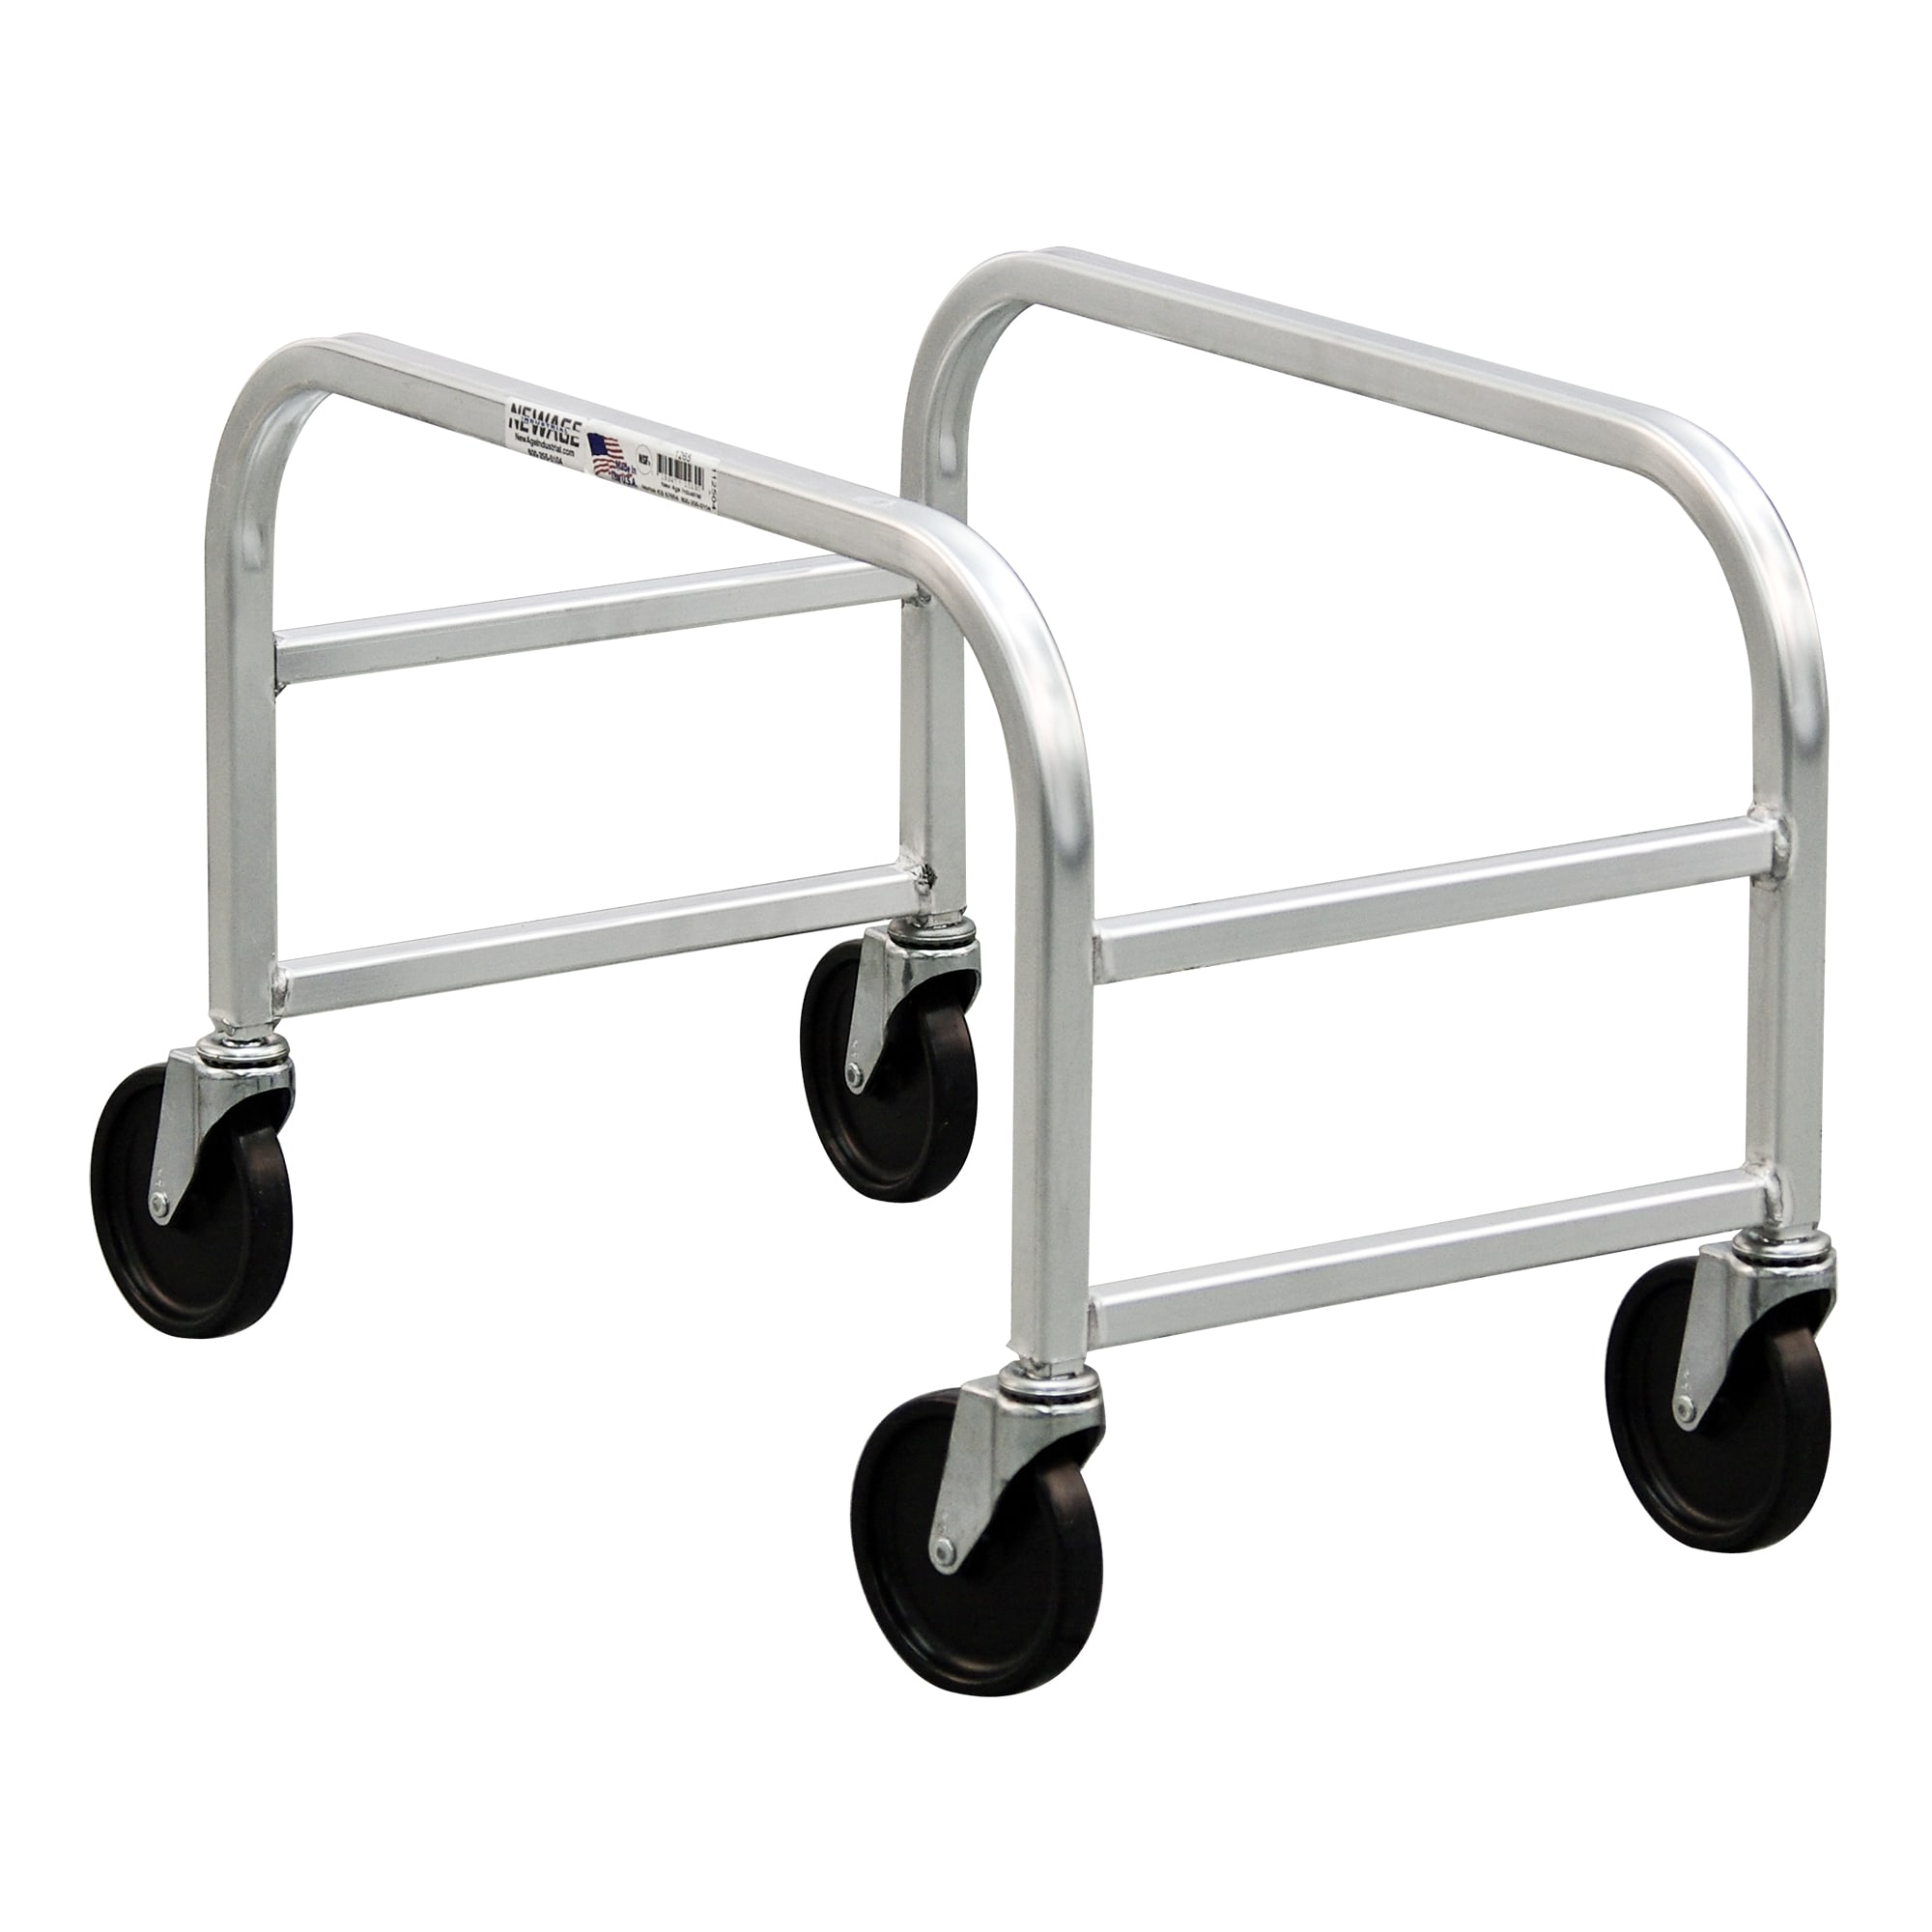 New Age 1265 Lug Dolly for Bulk Food w/ 1 Lug Capacity